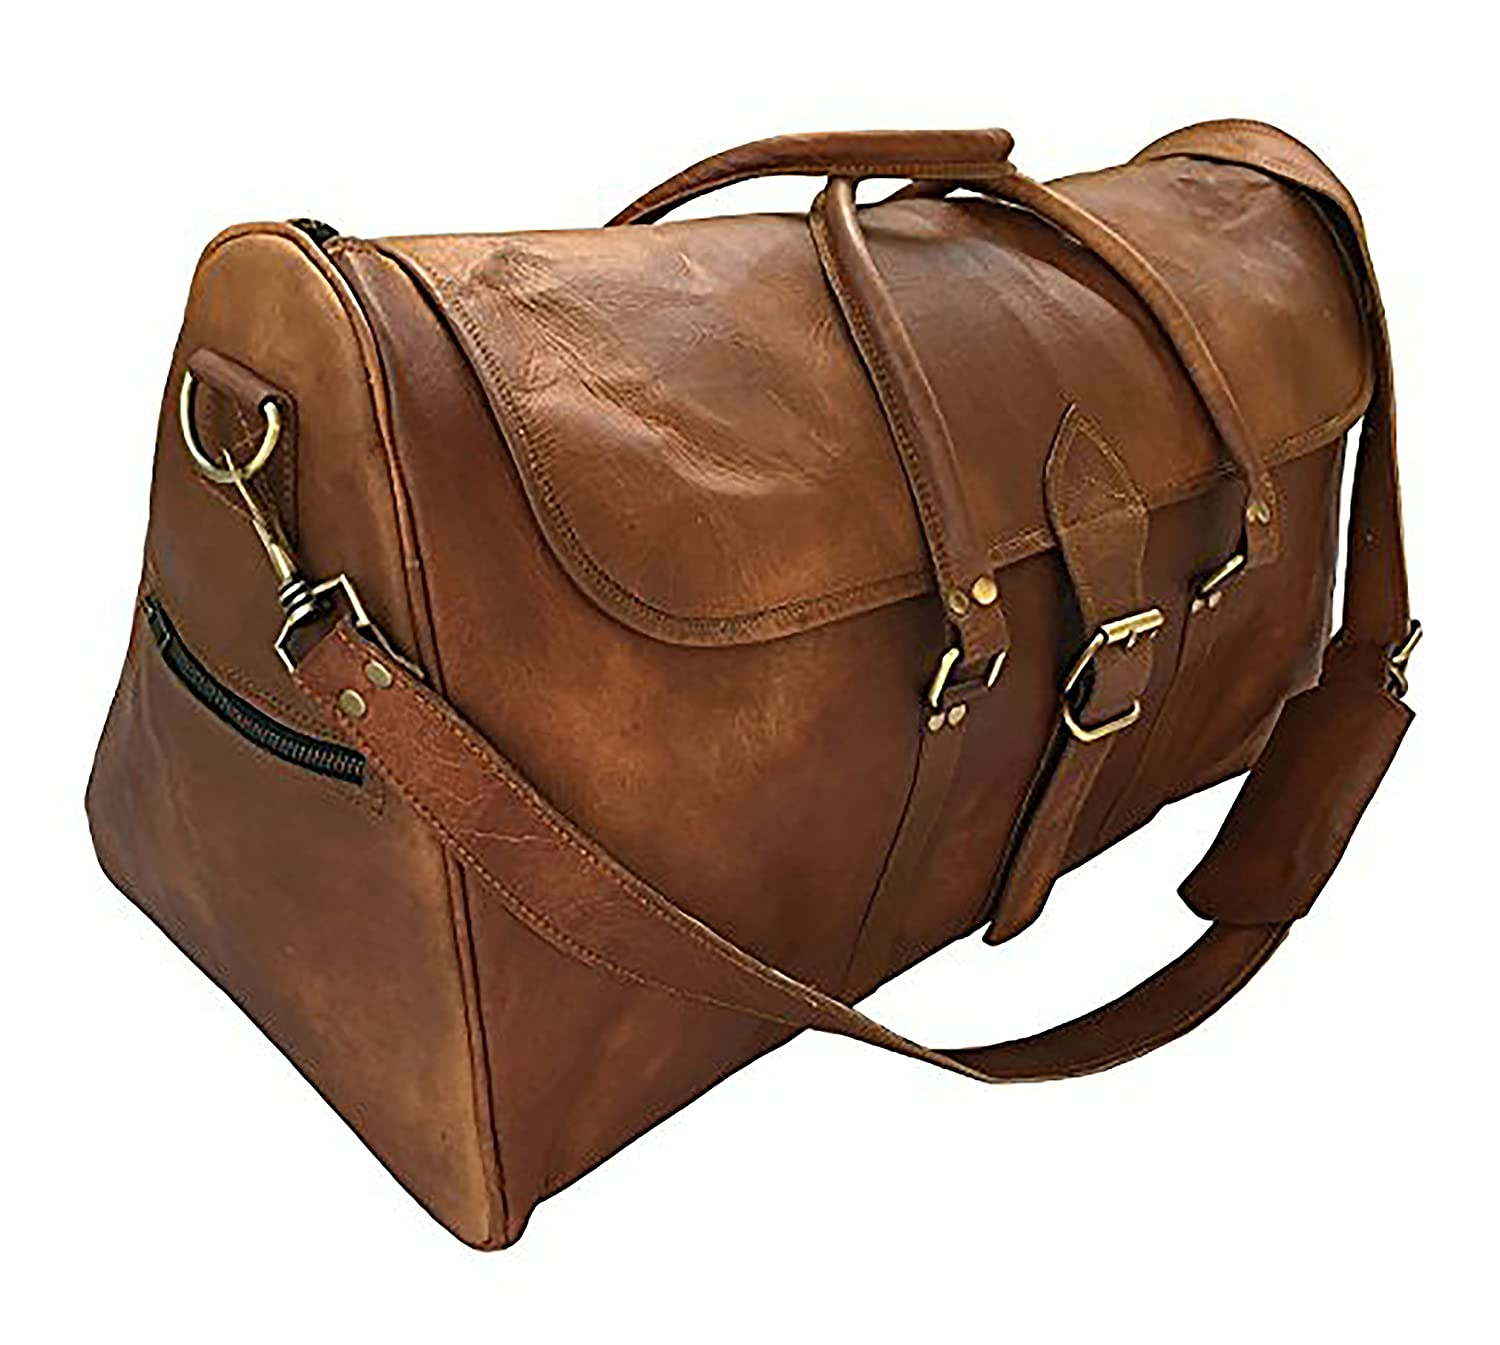 064303226a23 kk's 24 Inch real goat leather vintage genuine leather travel duffel bags  luggage bags gym bags overnight holdall bags for men and women